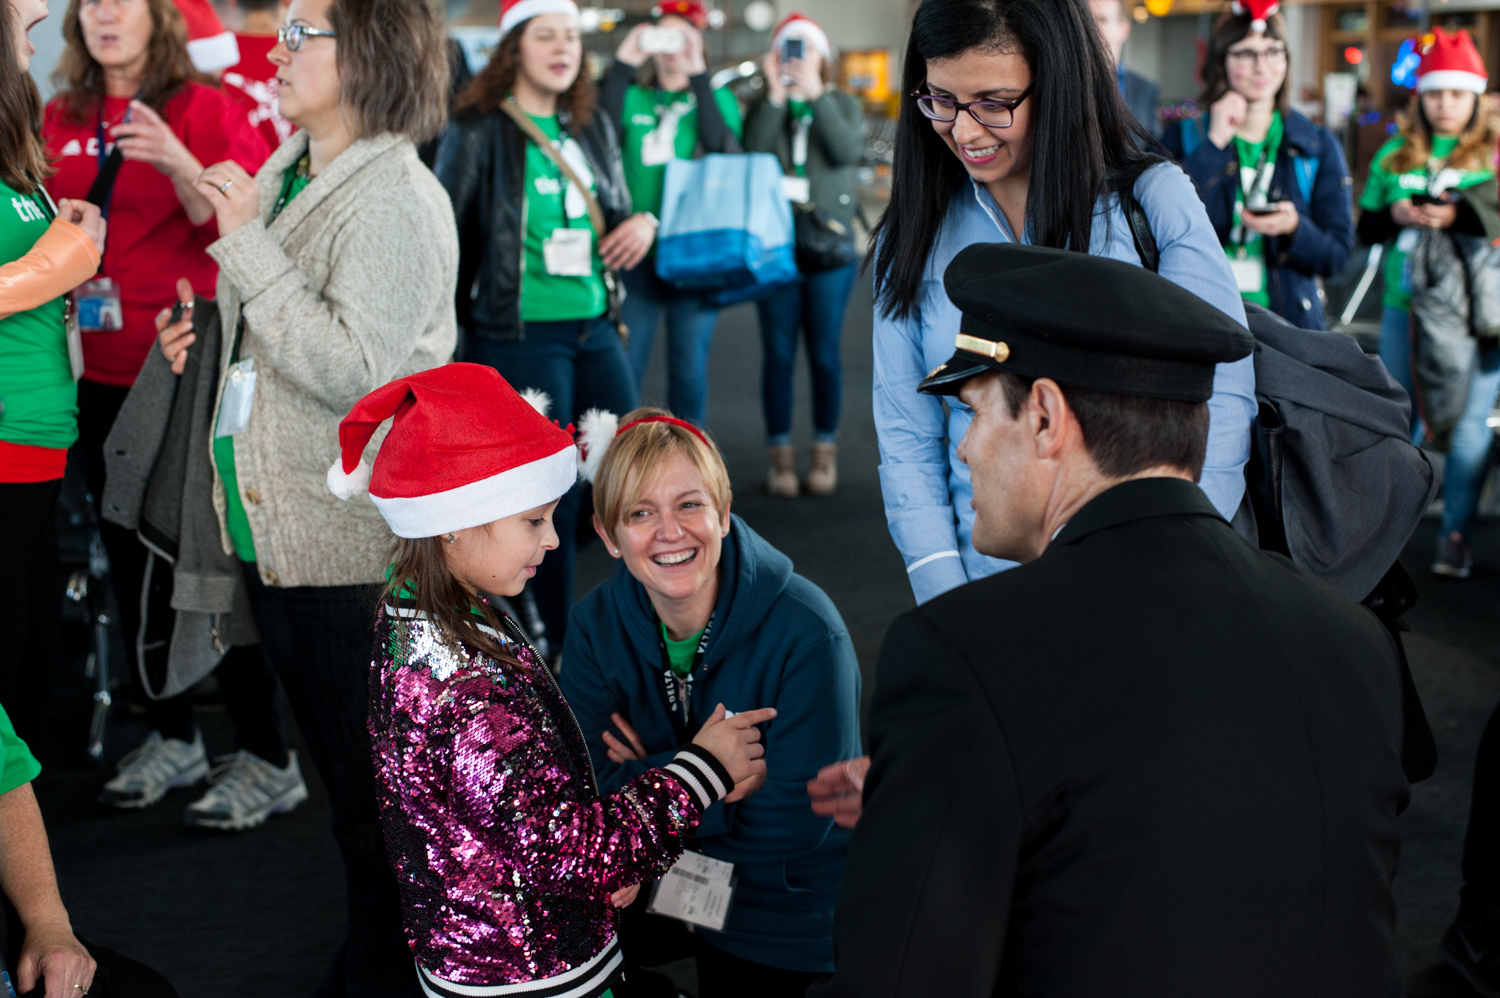 95 lucky elementary school students 'flew' to the 'North Pole' to meet Santa Tuesday, December 4, 2018. The kids, all from Washington Elementary School-Auburn, boarded a Delta plan at Sea-Tac, then taxied to their destination: a Delta hangar that had been transformed into a winter wonderland just for them. The kids played games, got gifts from Santa and visits from the Sea Gals, Seahawks and the Coca-Cola Polar Bear. Holiday in then Hangar is an annual event Delta puts on to support the community. (Image: Elizabeth Crook / Seattle Refined)